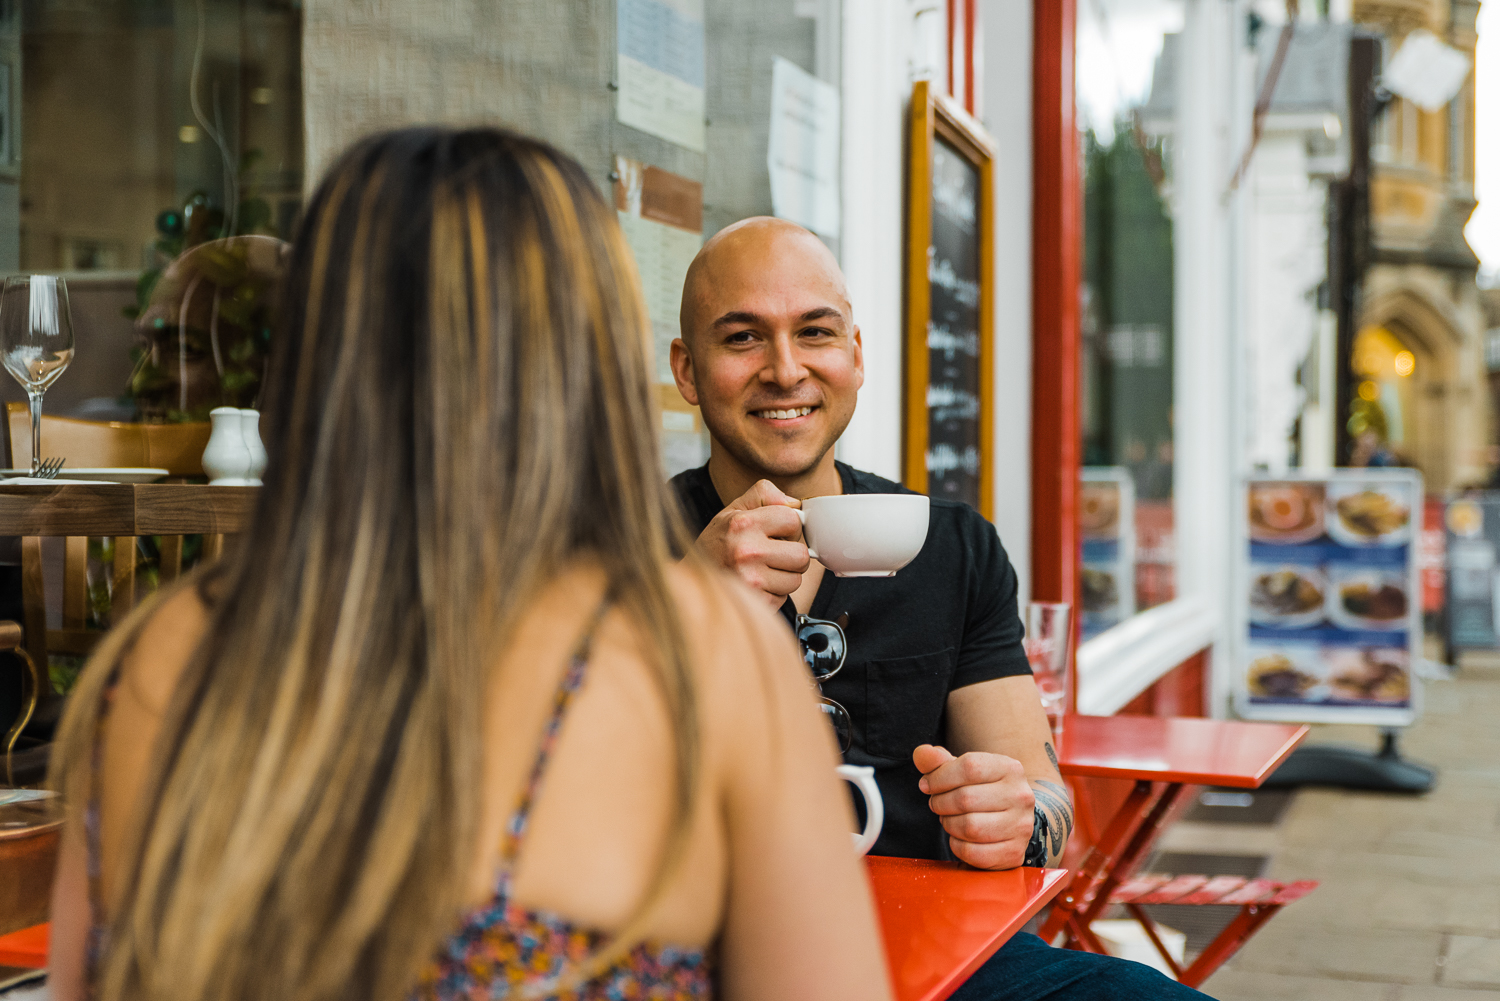 A man drinks coffee while smiling at his girlfriend during a couple photo session in Cambridge